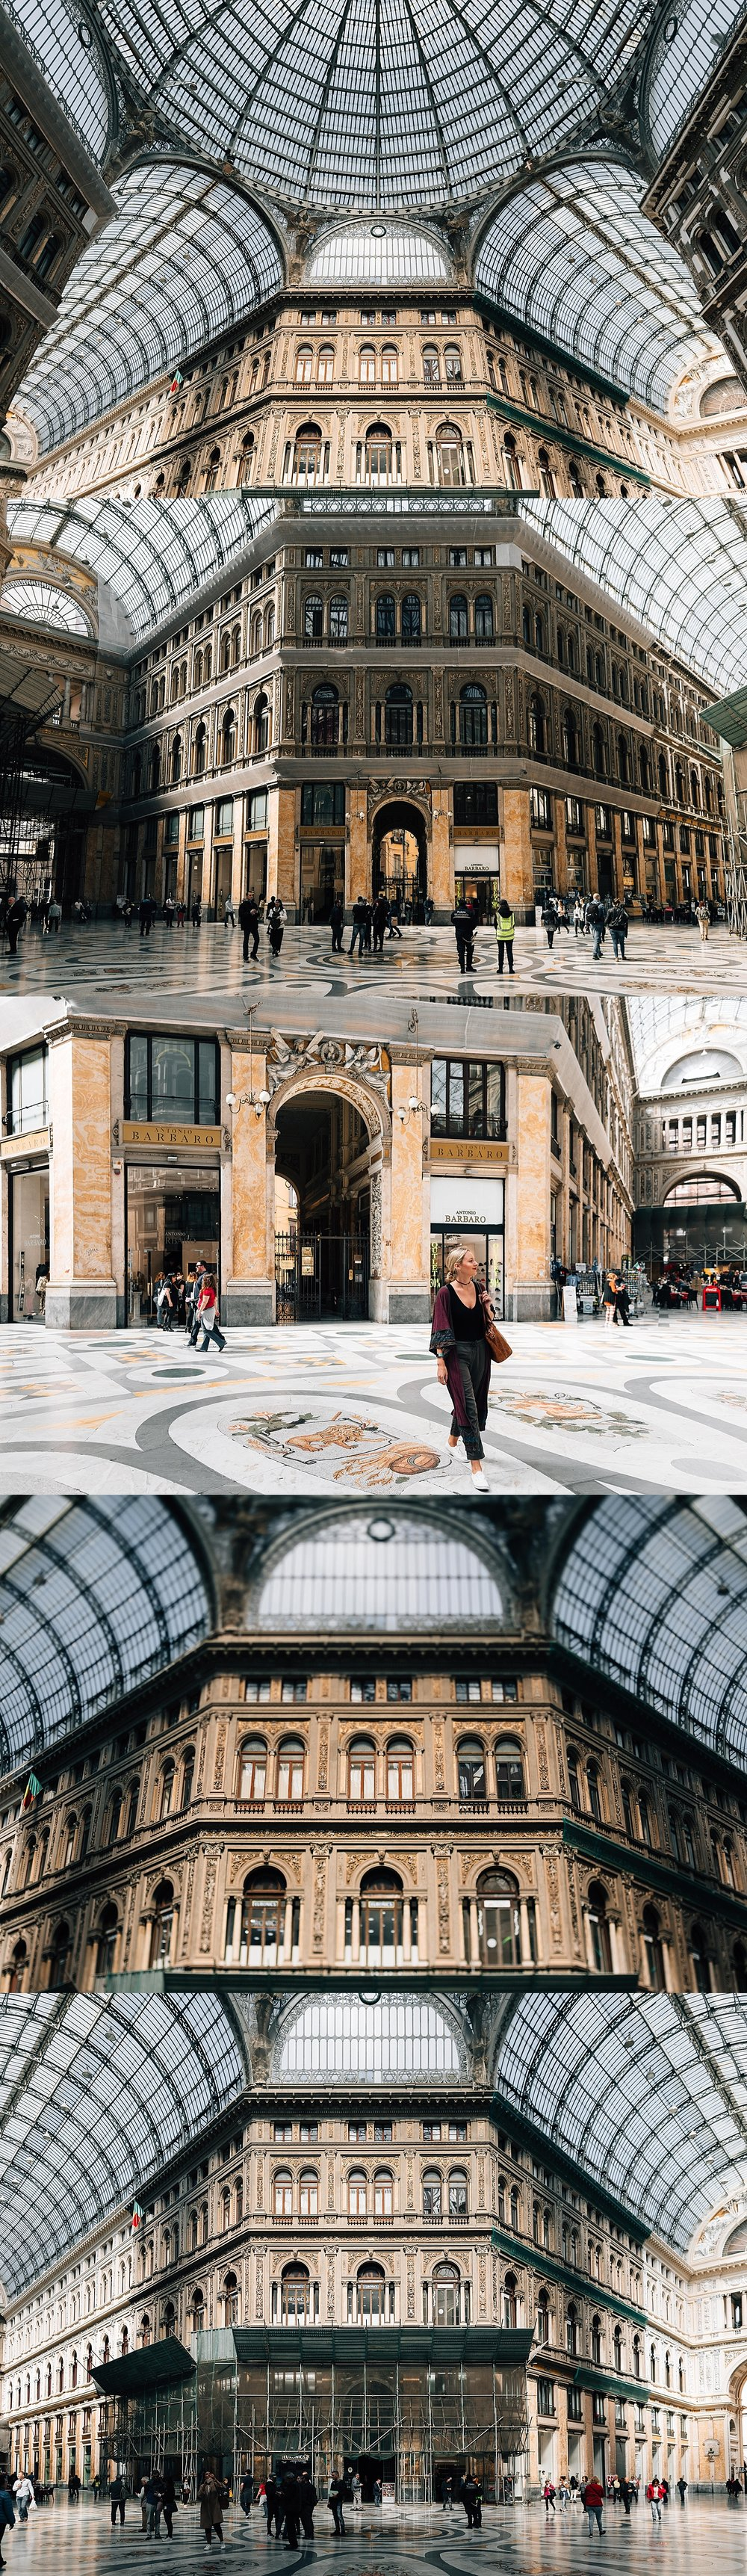 Galleria Umberto I - fancy mall.